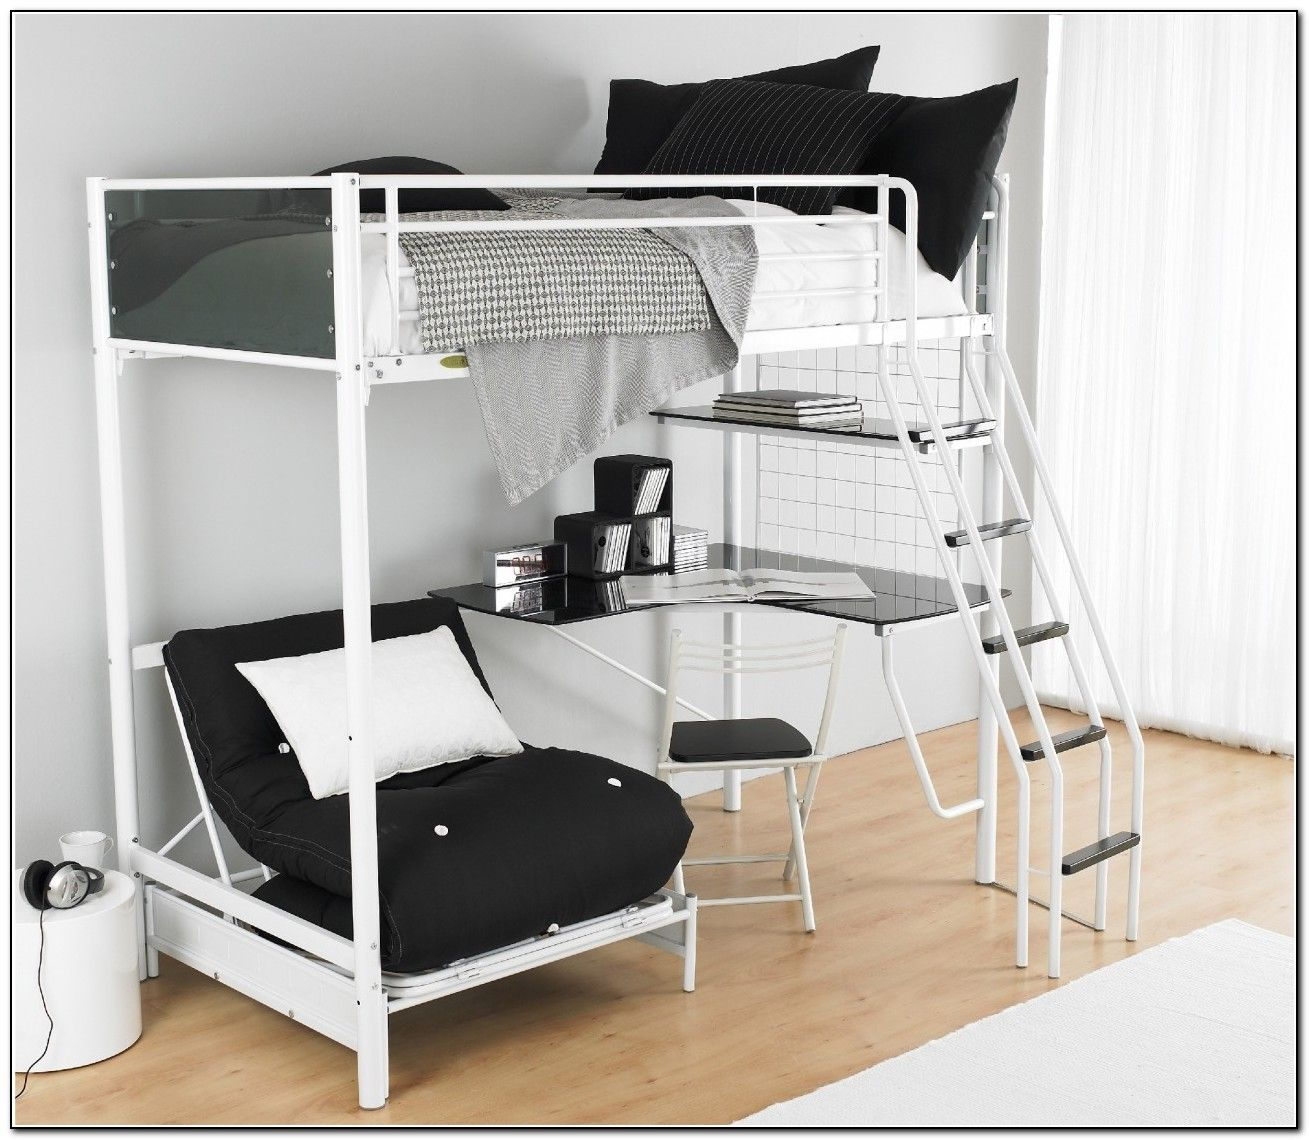 Metal loft bed ideas  Captivating Bunk Beds with Desk and Fluffy Black Sofa for Modern